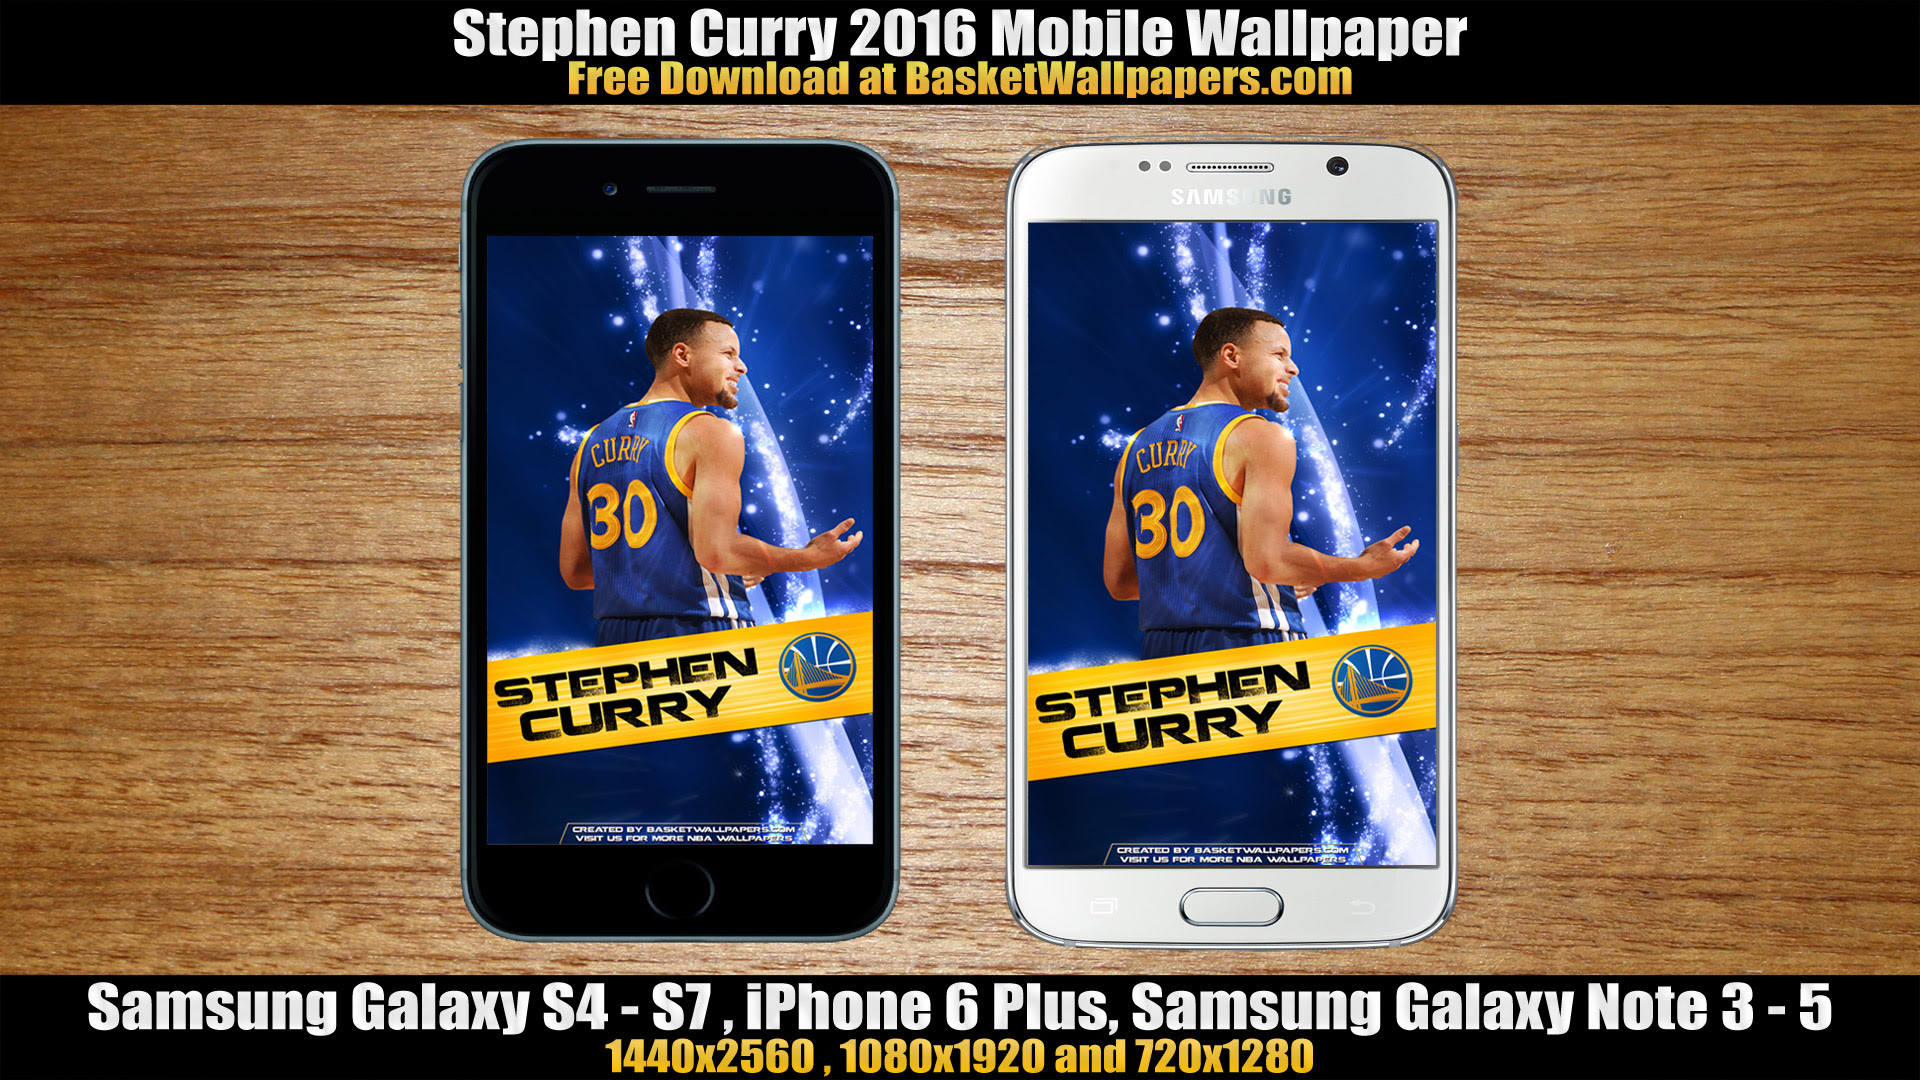 Stephen Curry Golden State Warriors 2016 Mobile Wallpaper